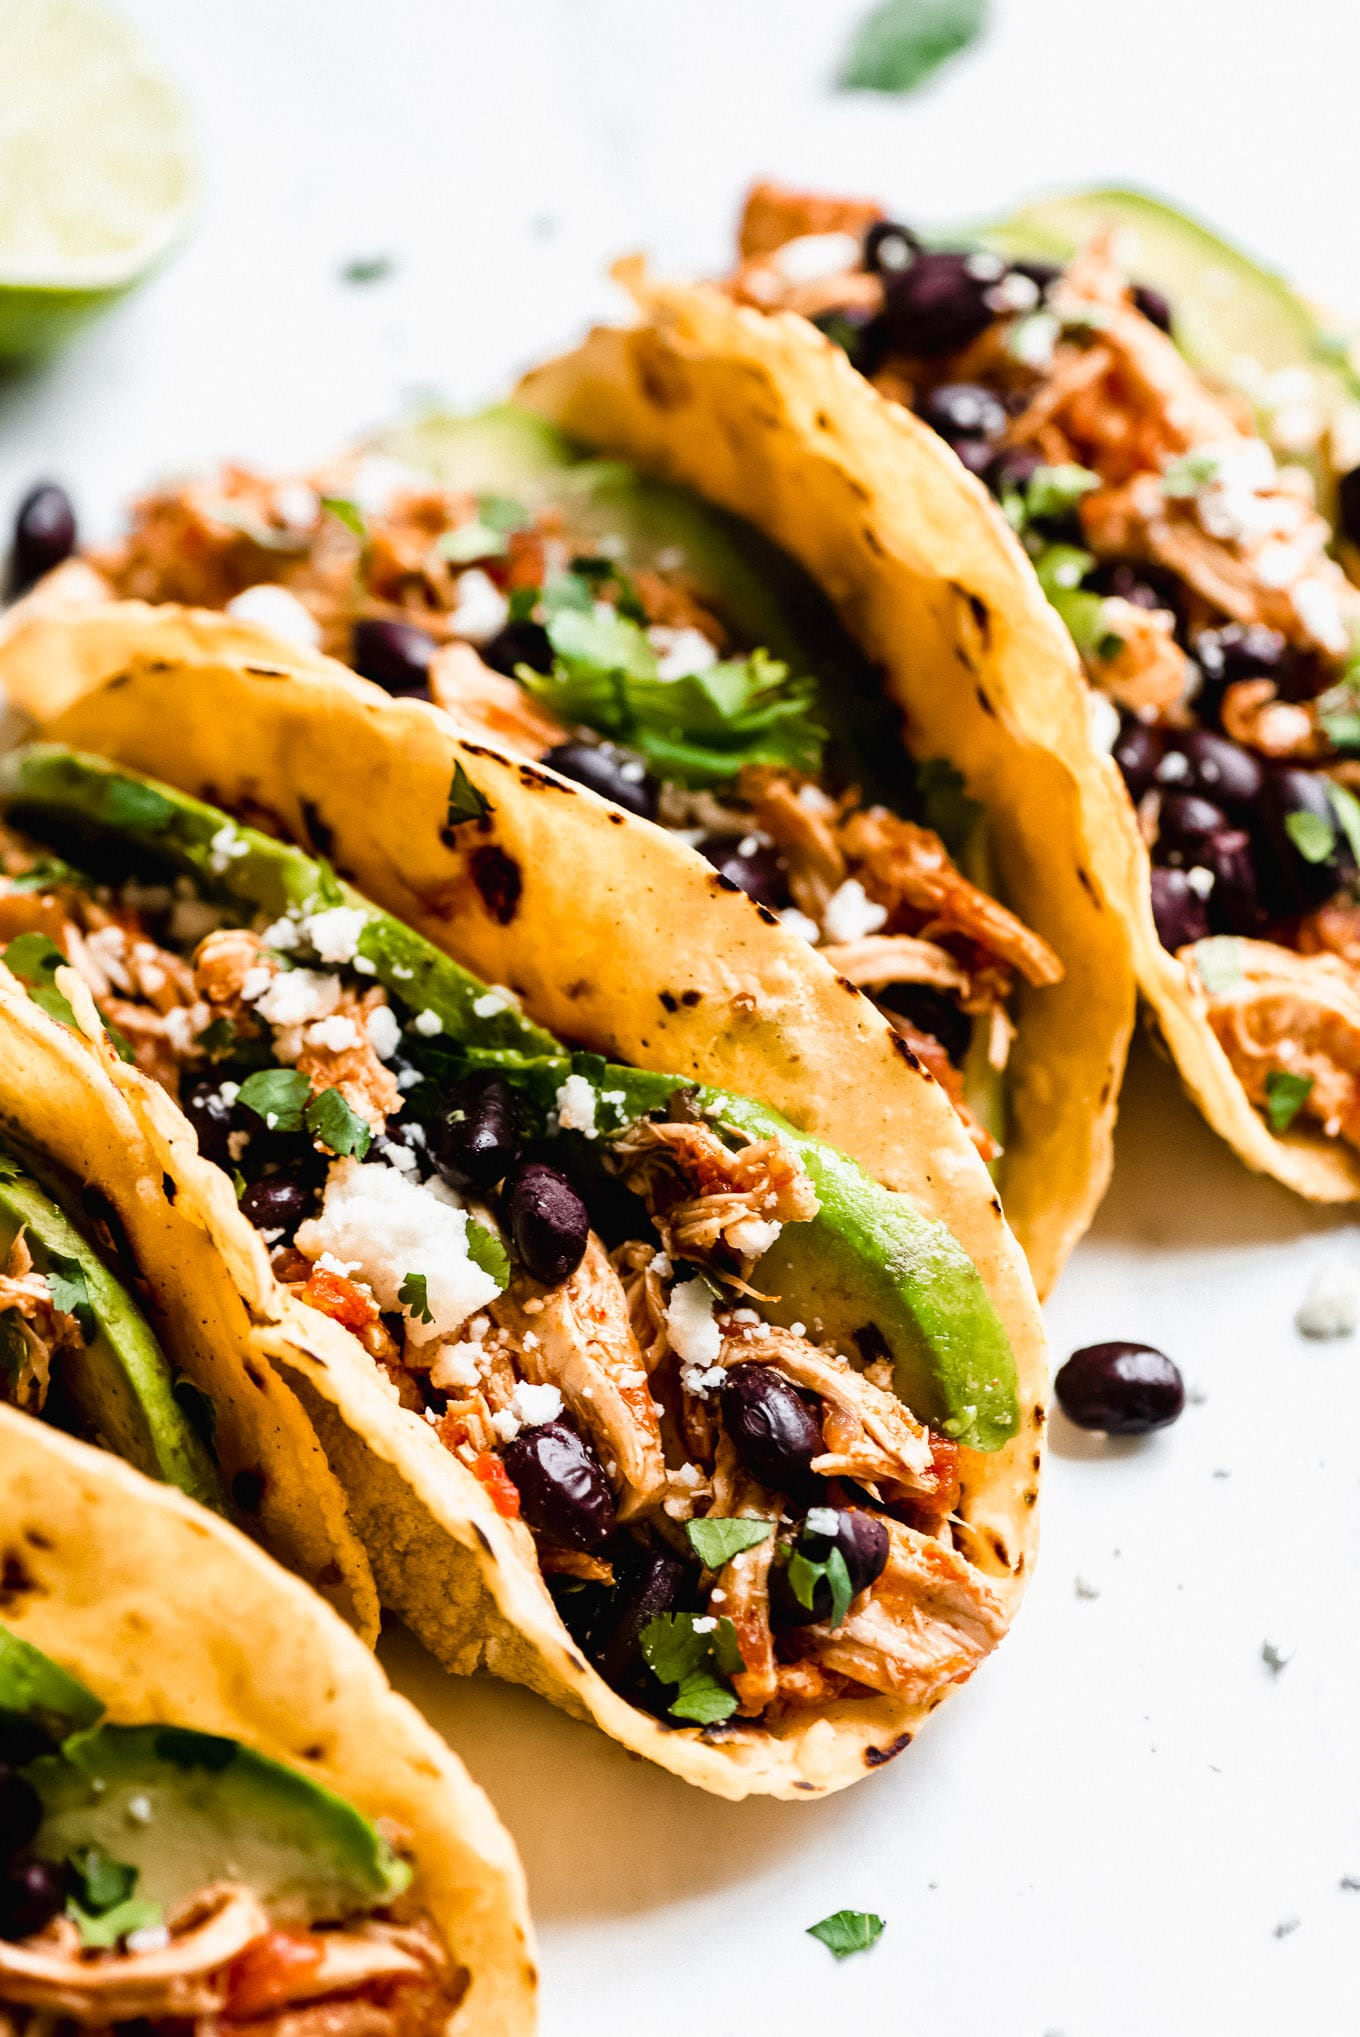 Slow Cooker Salsa Chicken Tacos filled with shredded salsa chicken, black beans, avocados, cilantro, and Queso fresco.